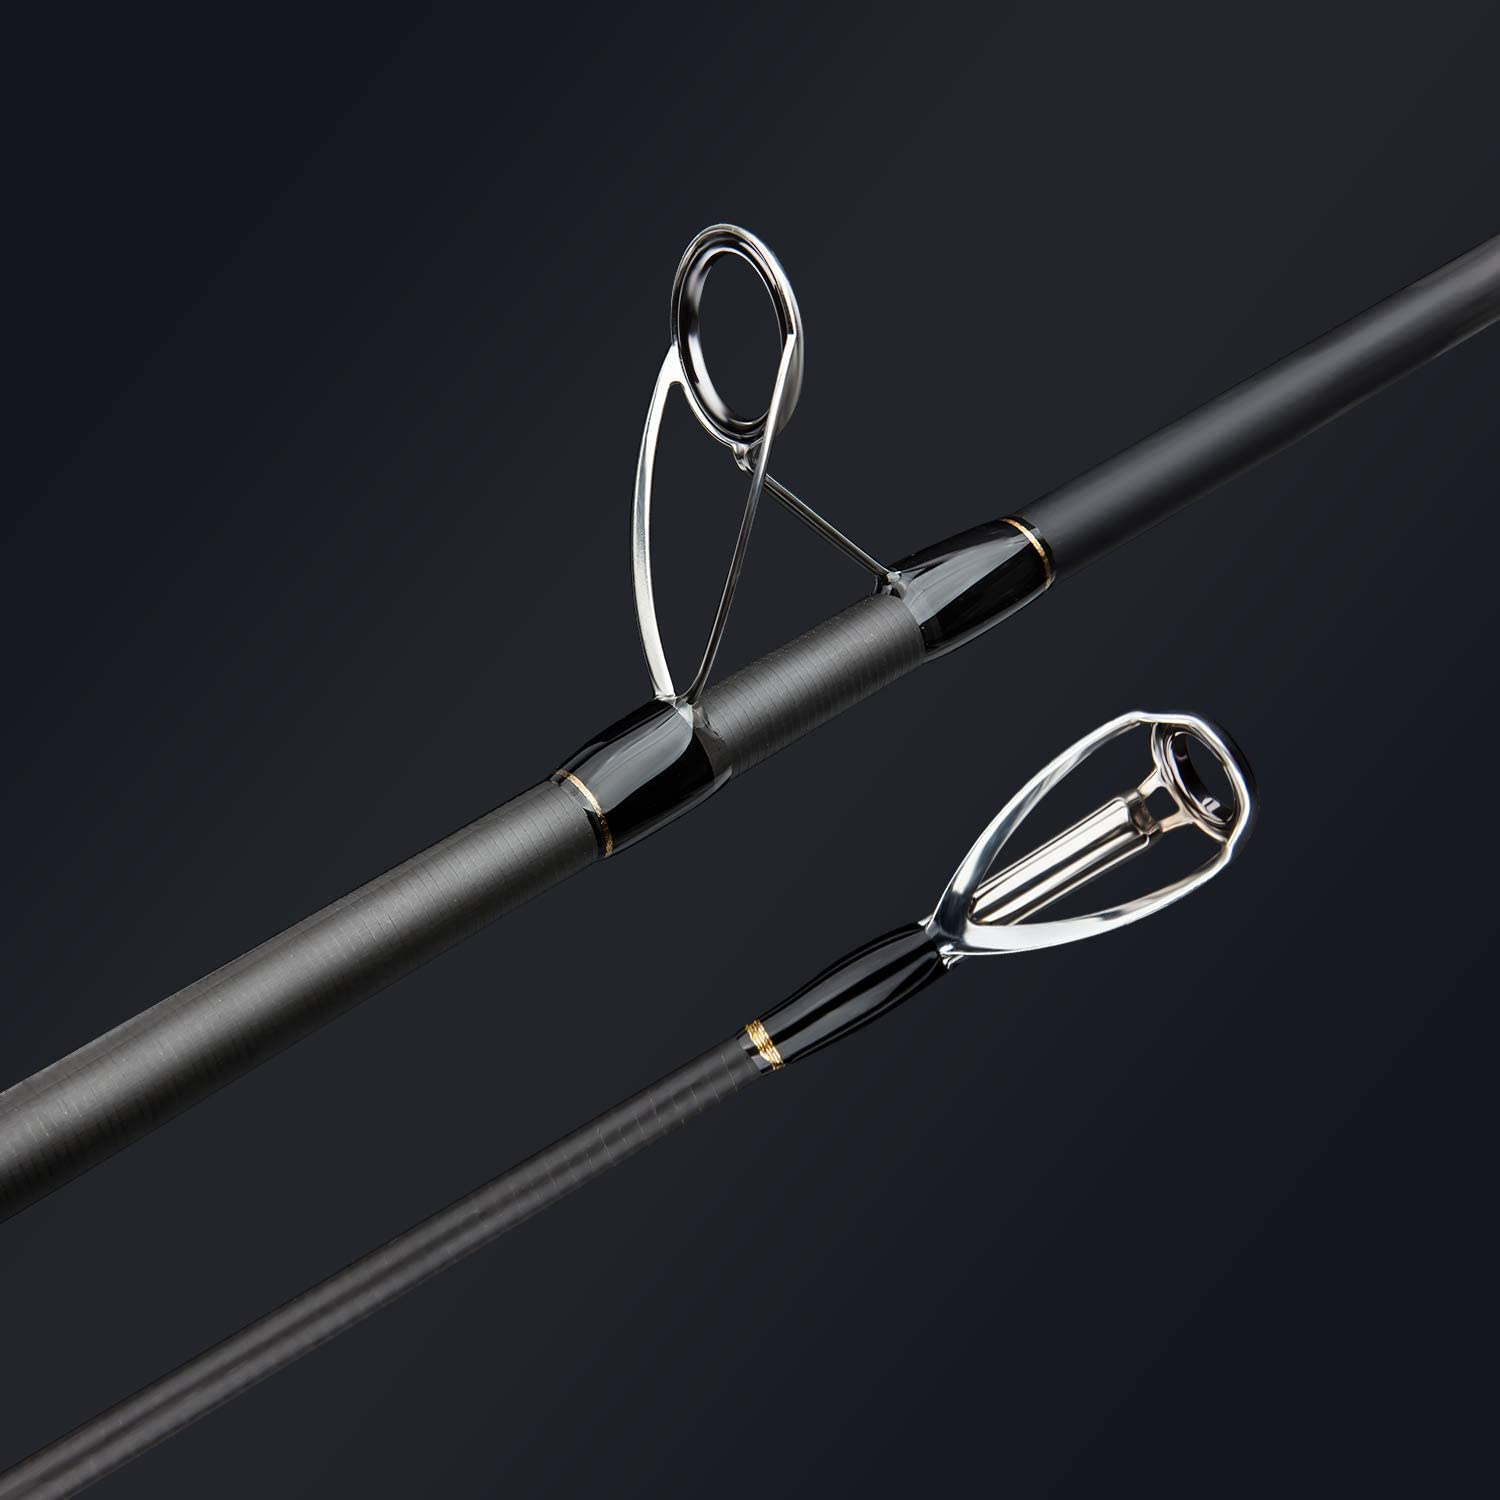 consumer reports Fishing Rods